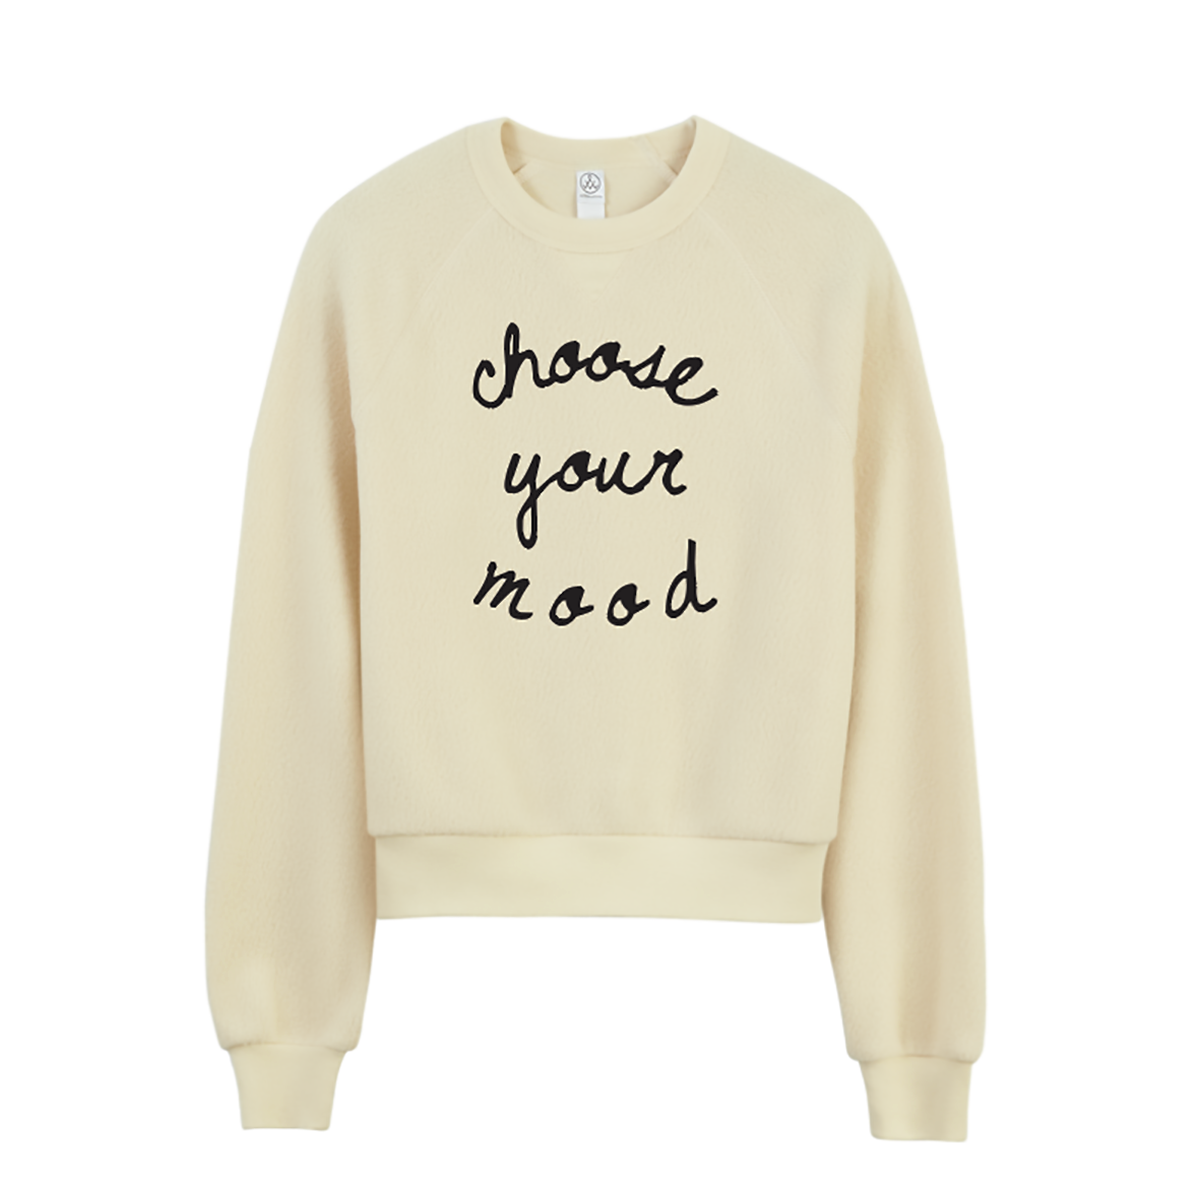 Choose Your Mood Teddy Sweatshirt - Cream